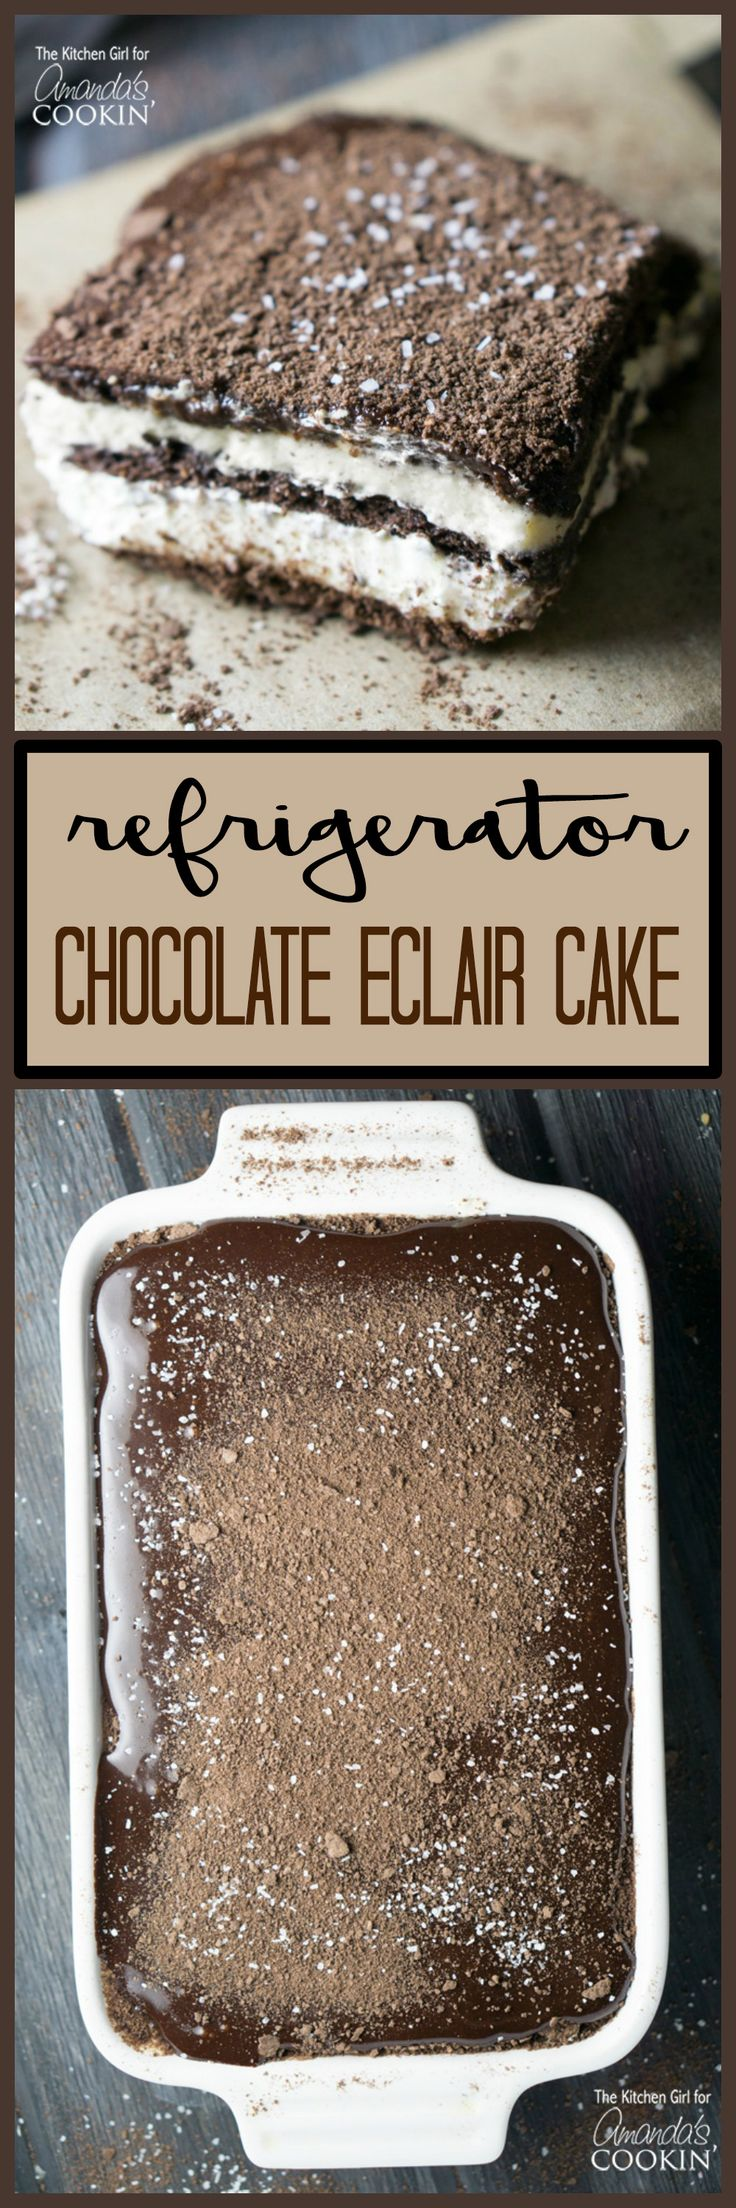 This no bake Chocolate Eclair Cake is a silky, decadent, creamy, chocolatey, cake that magically becomes all of those adjectives with very little effort. (No Bake Chocolate Bars)